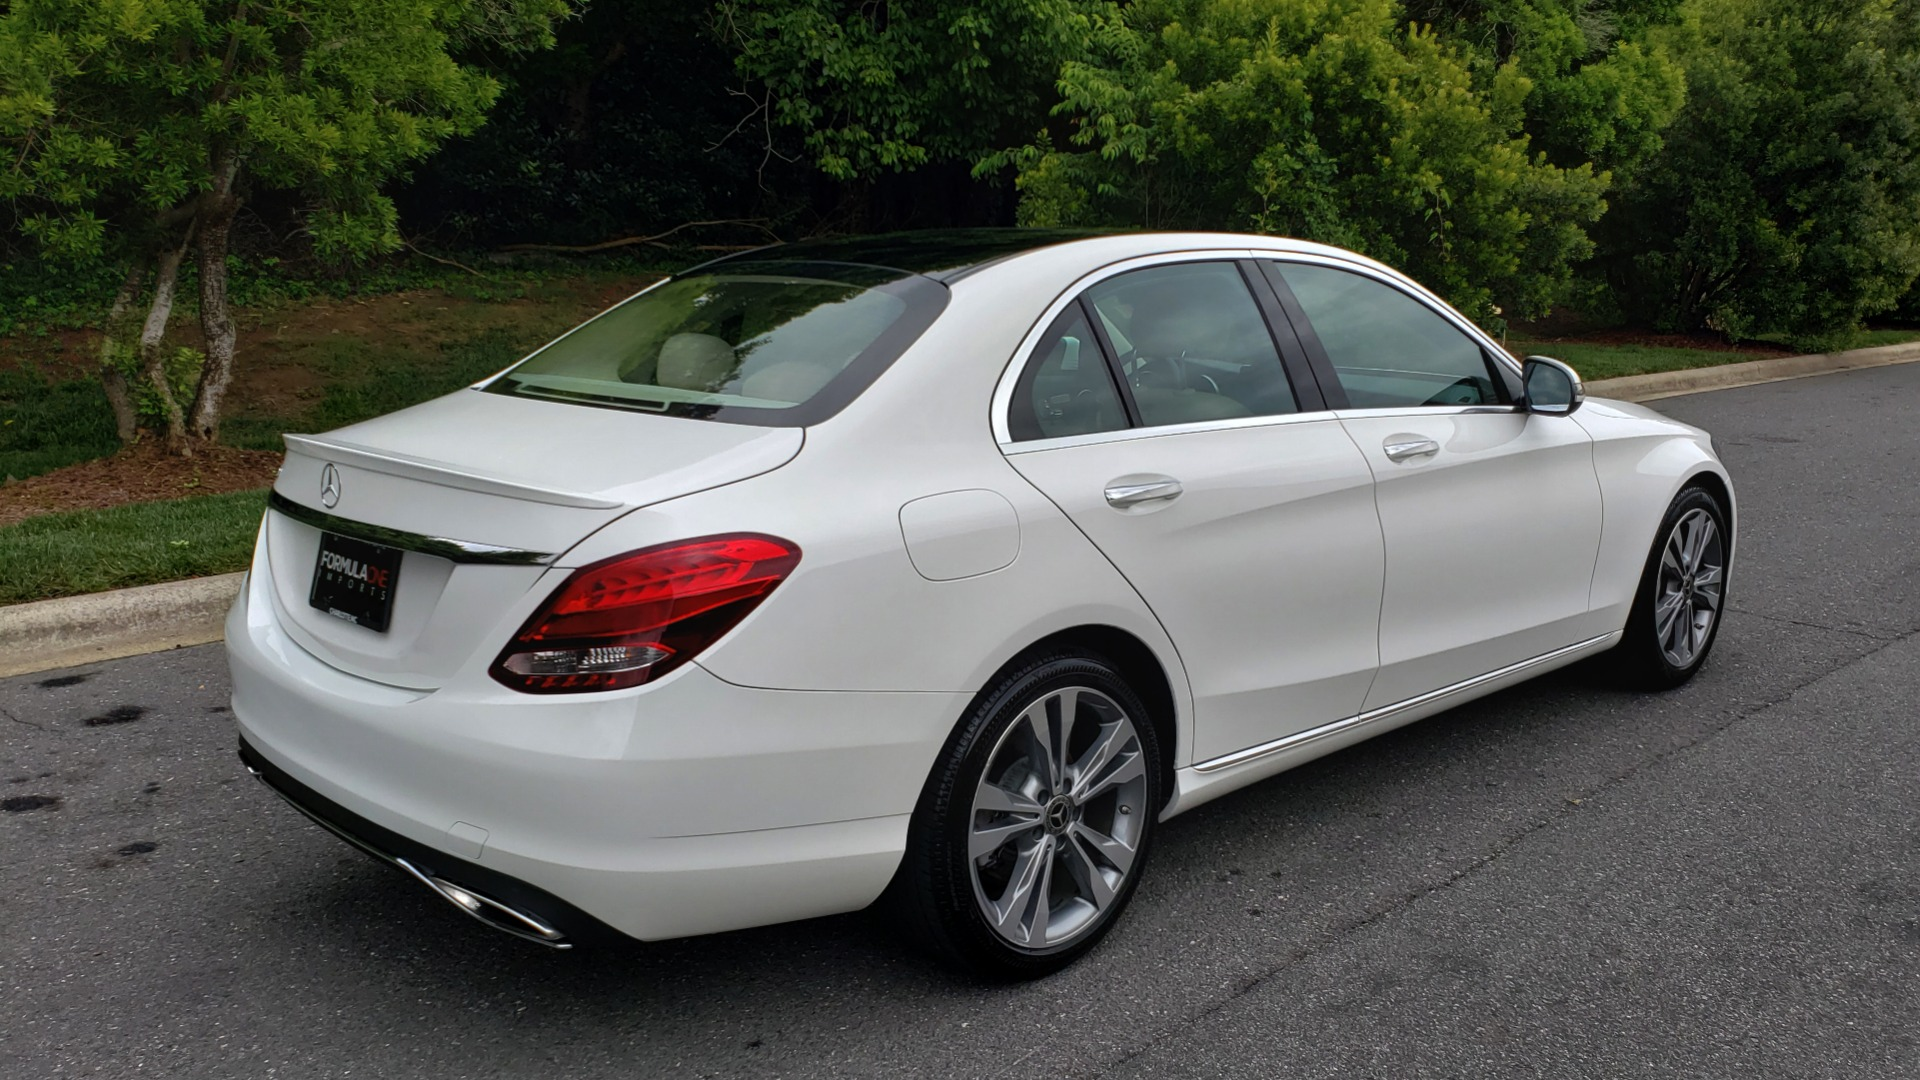 Used 2017 Mercedes-Benz C-CLASS C 300 PREMIUM SEDAN / NAV / PANO-ROOF / HTD STS / REARVIEW for sale Sold at Formula Imports in Charlotte NC 28227 6